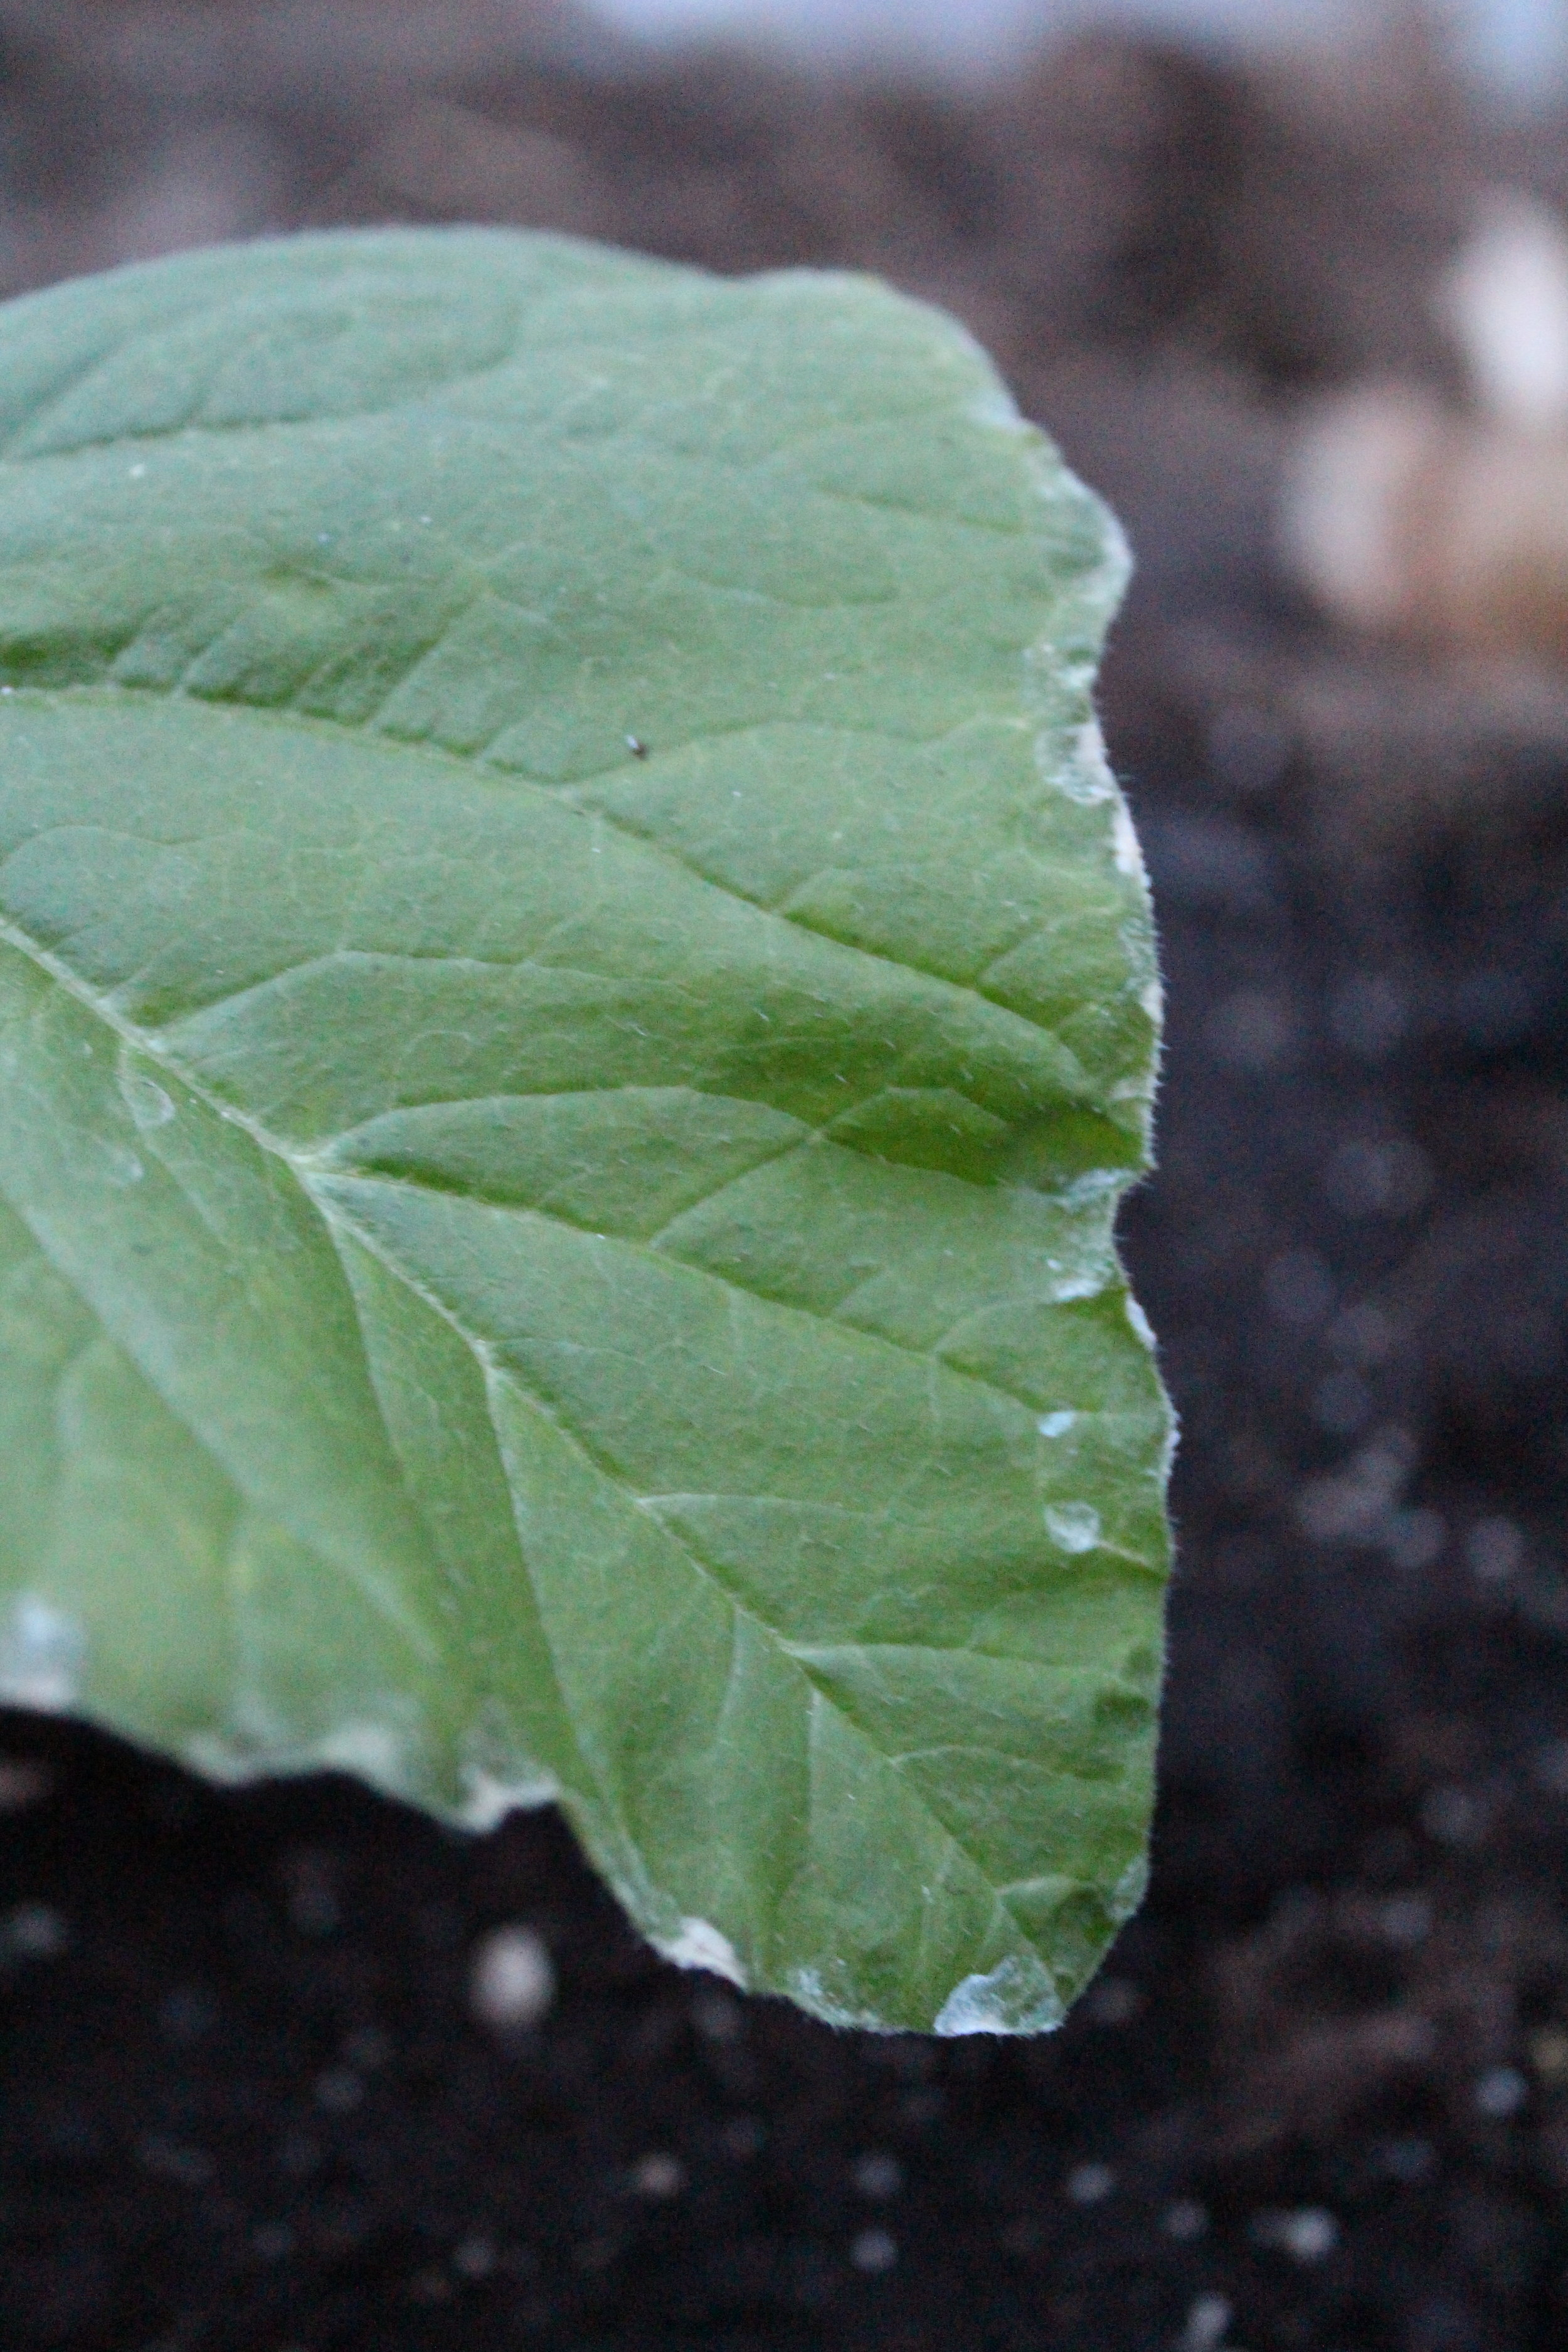 Weird white stuff along the edges of my leaf. It almost looks like dried up dirt that had splashed up when I was watering it.